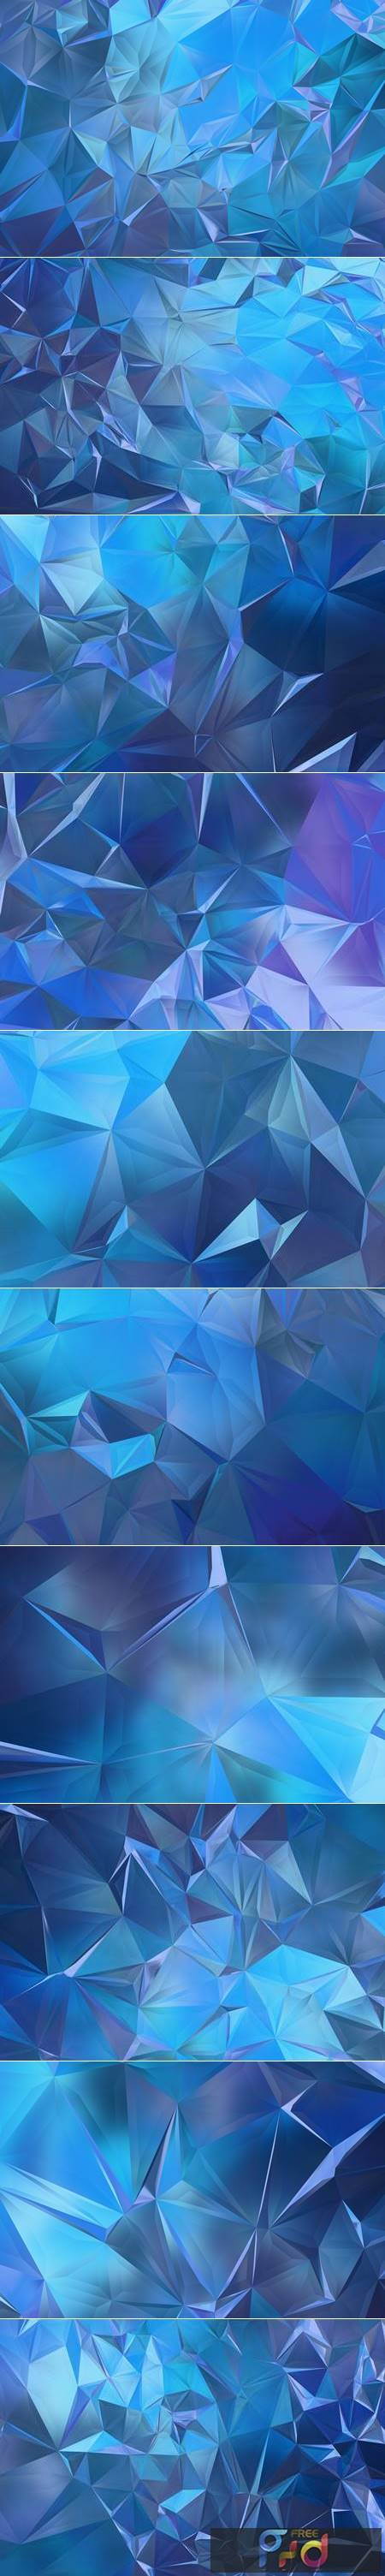 Abstract Polygon Backgrounds 82P3X58 1